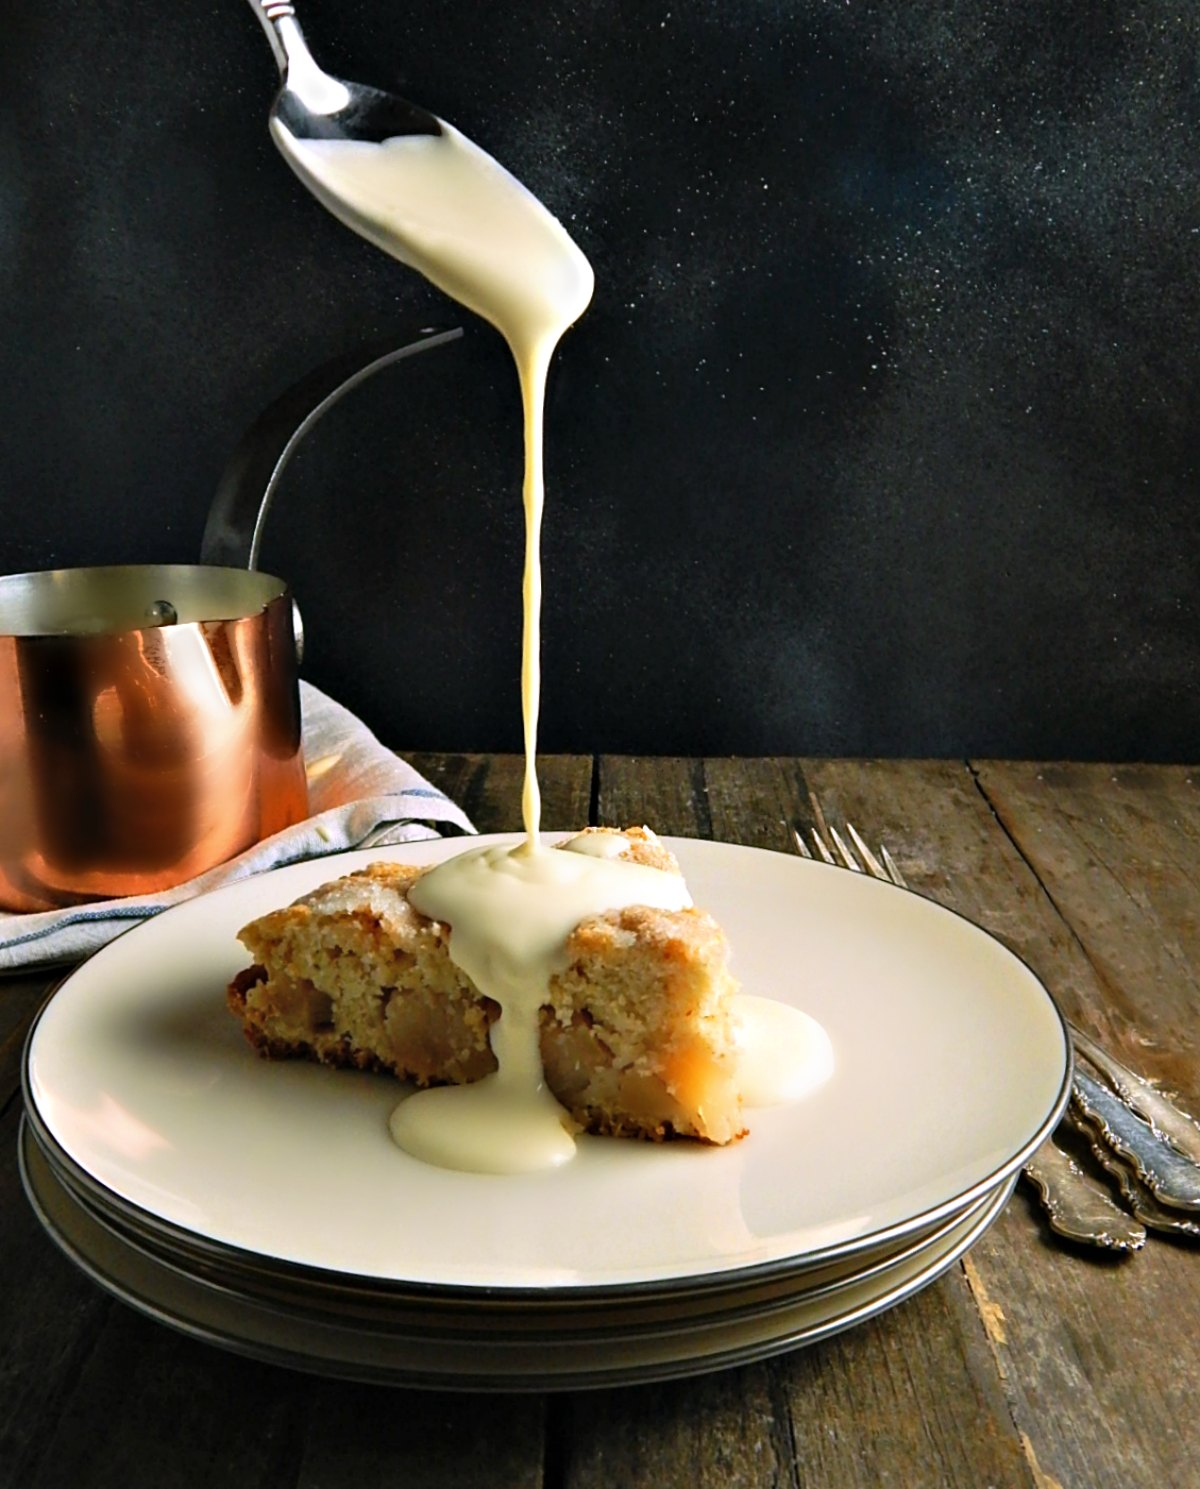 Irish Apple Pie Cake with Custard Sauce - Creme Anglaise